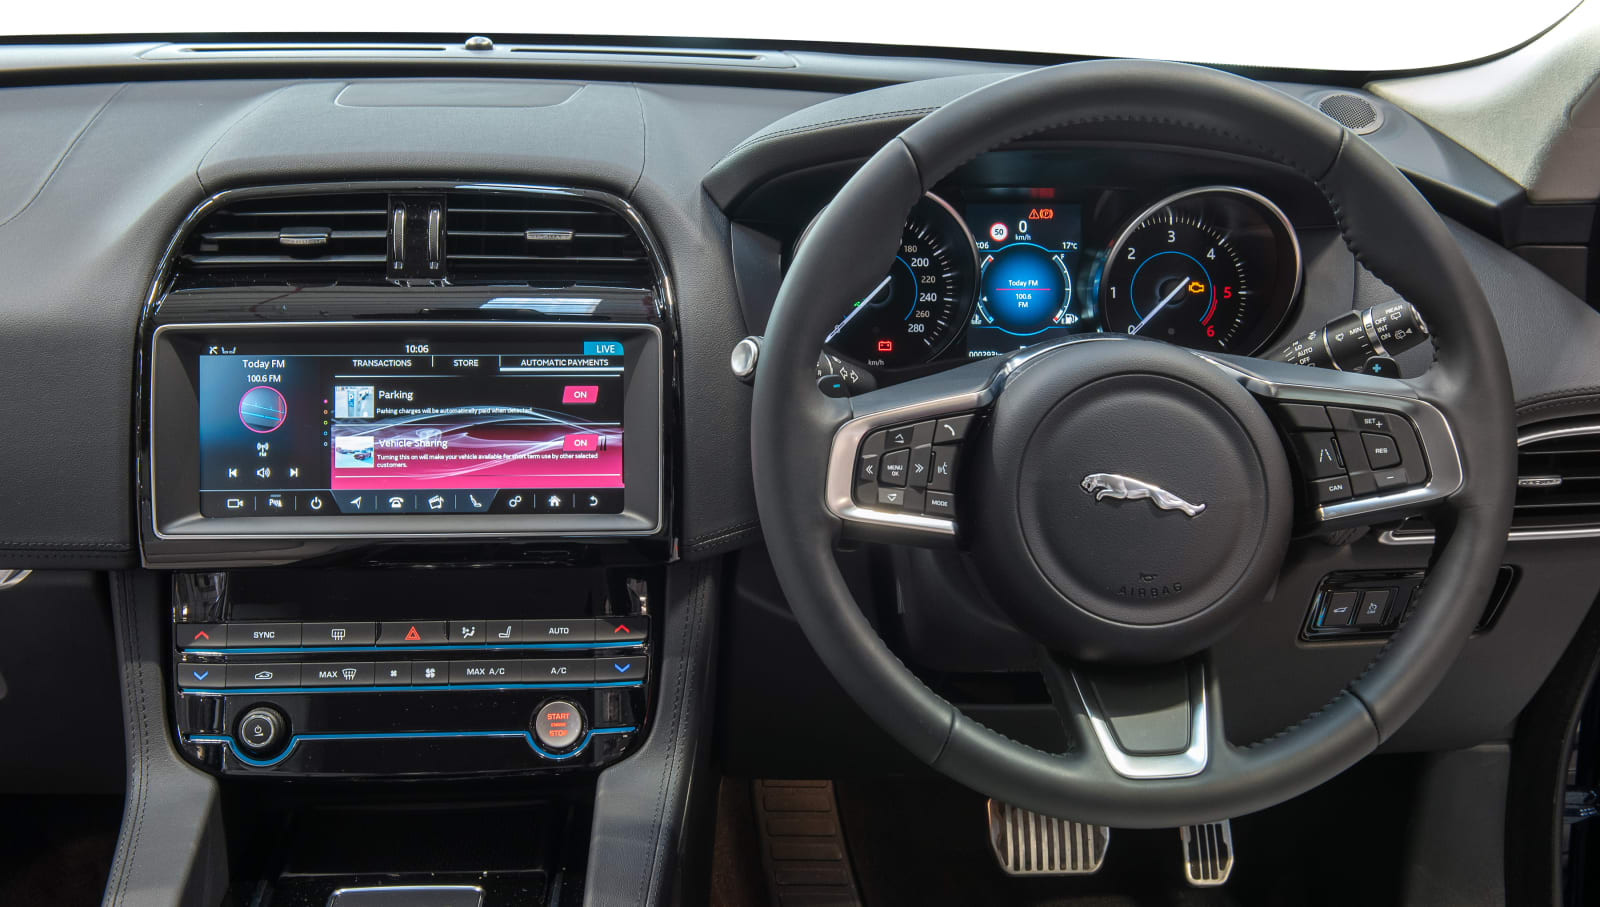 Jaguar Land Rover offers car owners crypto to share their driving data